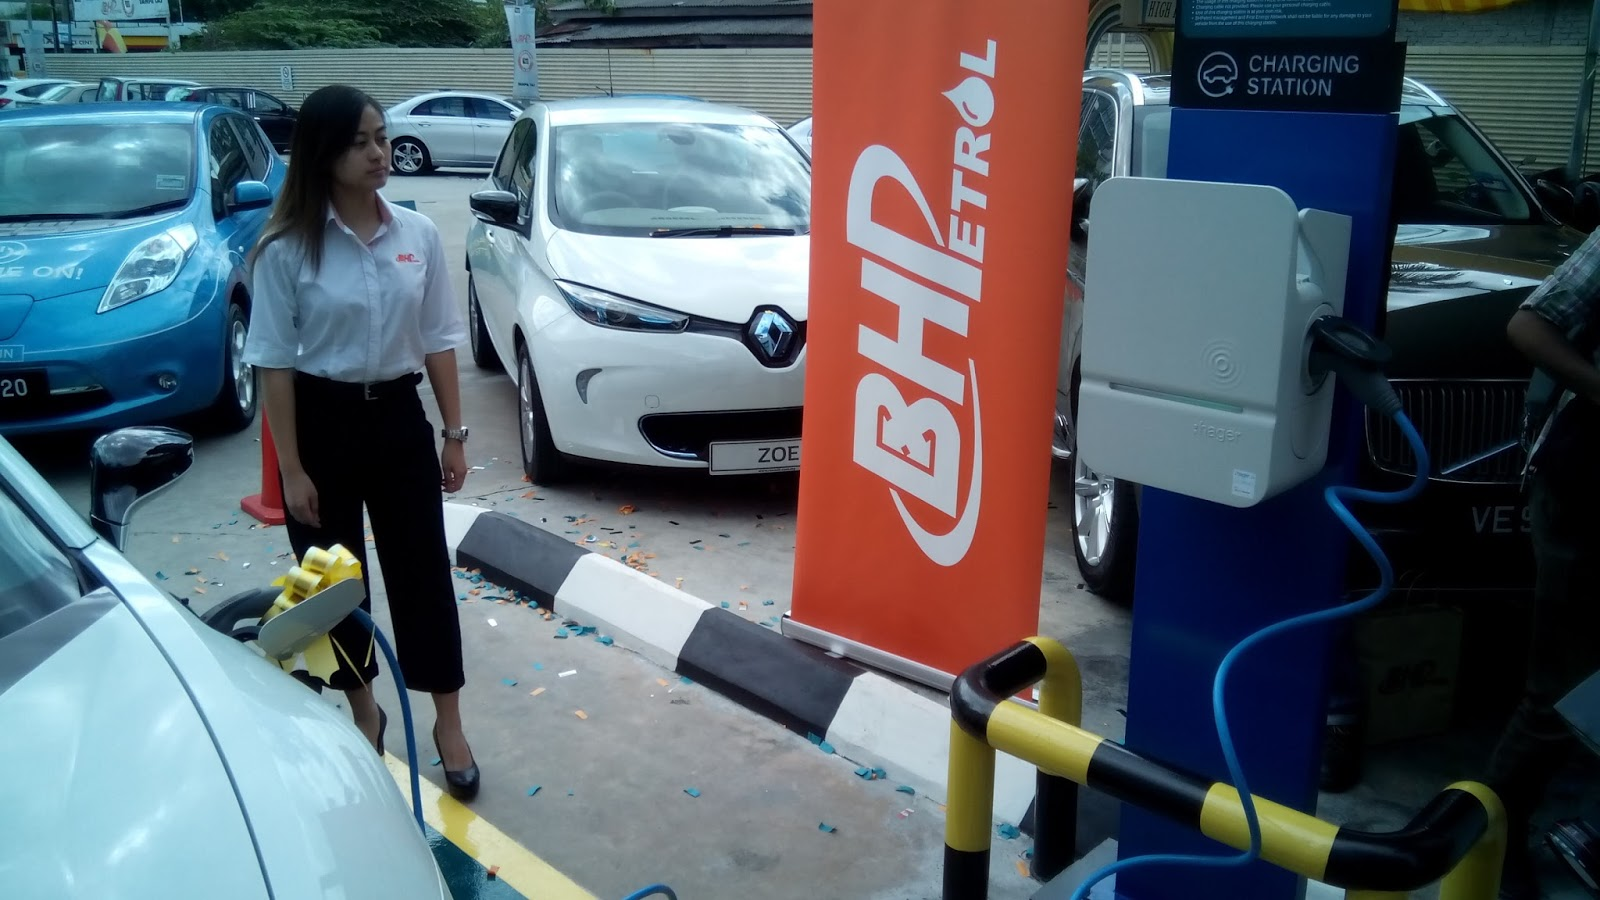 Bhpetrol Boustead Petroleum Marketing Sdn Bhd Recently Marked Its 11th Year In The Business By Installing Re Charging Stations For Electric And